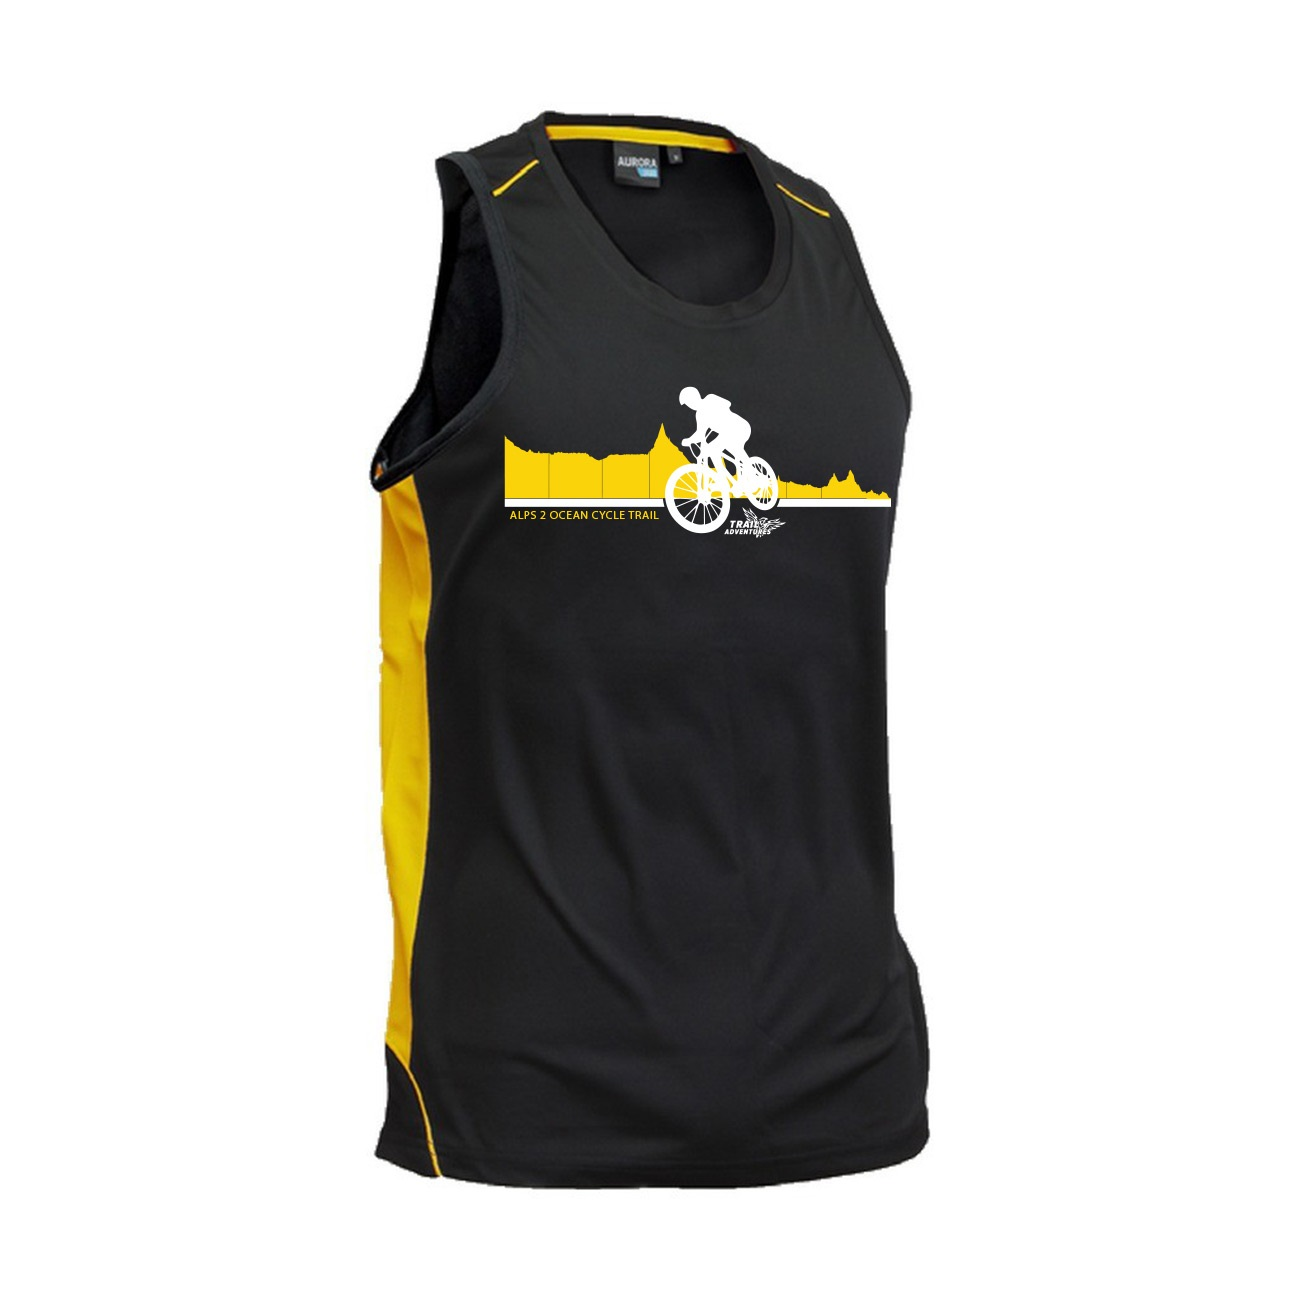 MATCHPACE SINGLET FRONT.jpg